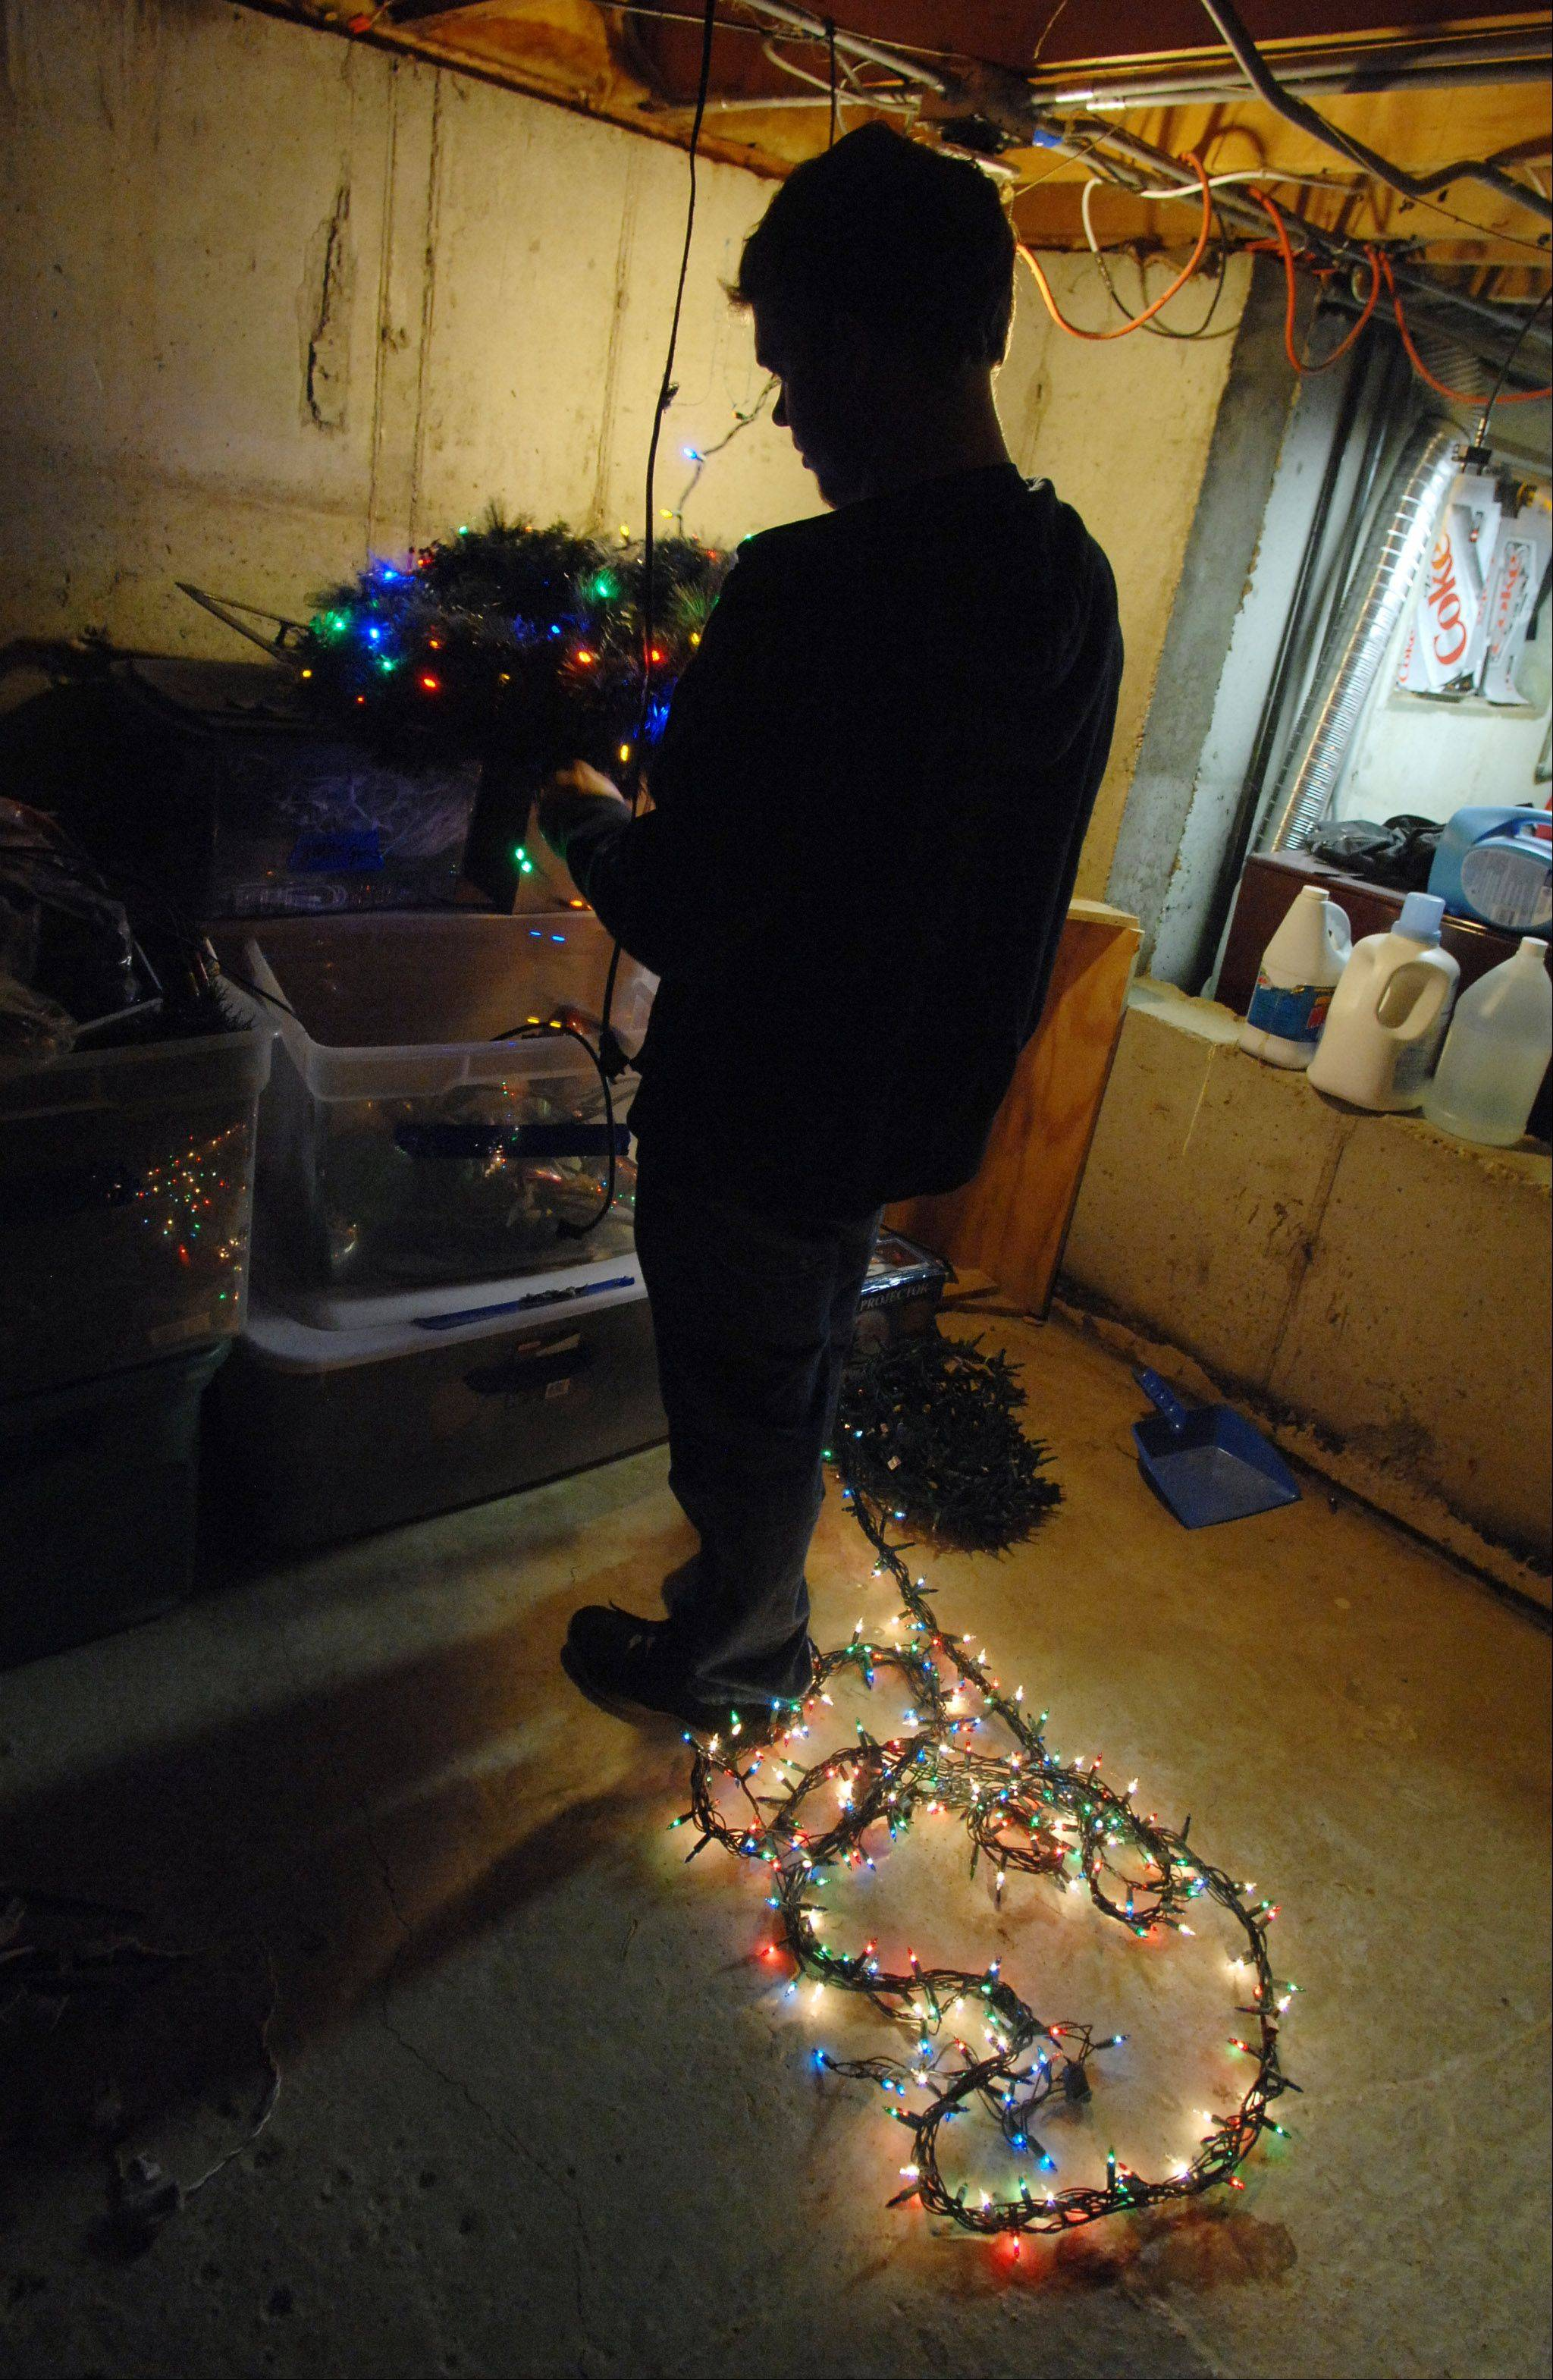 Gurnee resident Adam Germann tests out the lights before dragging them outside from his basement storage area.